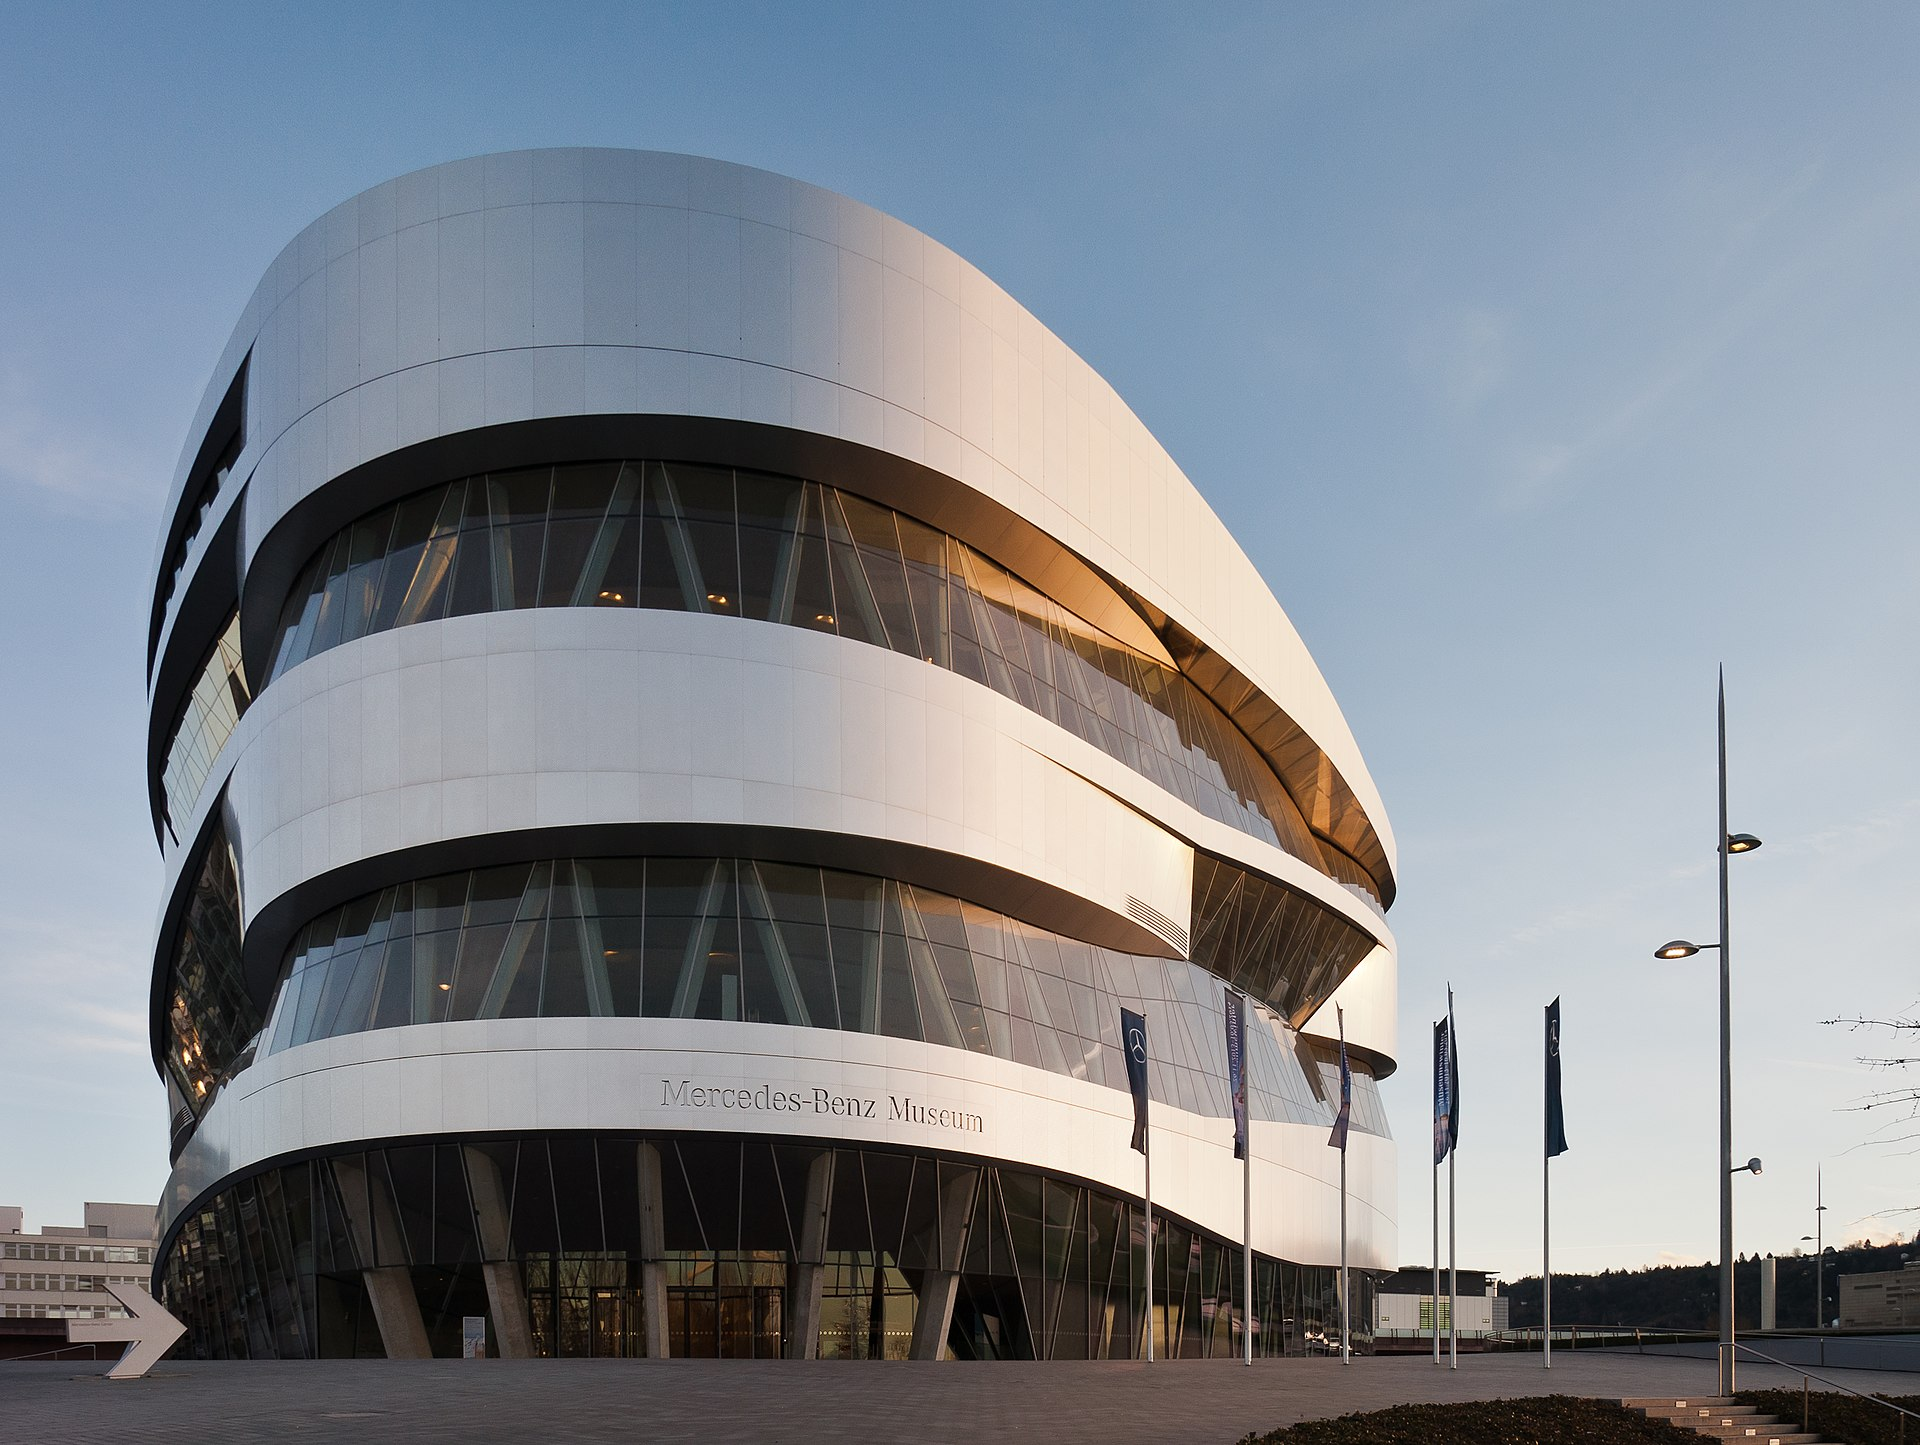 mercedes benz museum wikipedia